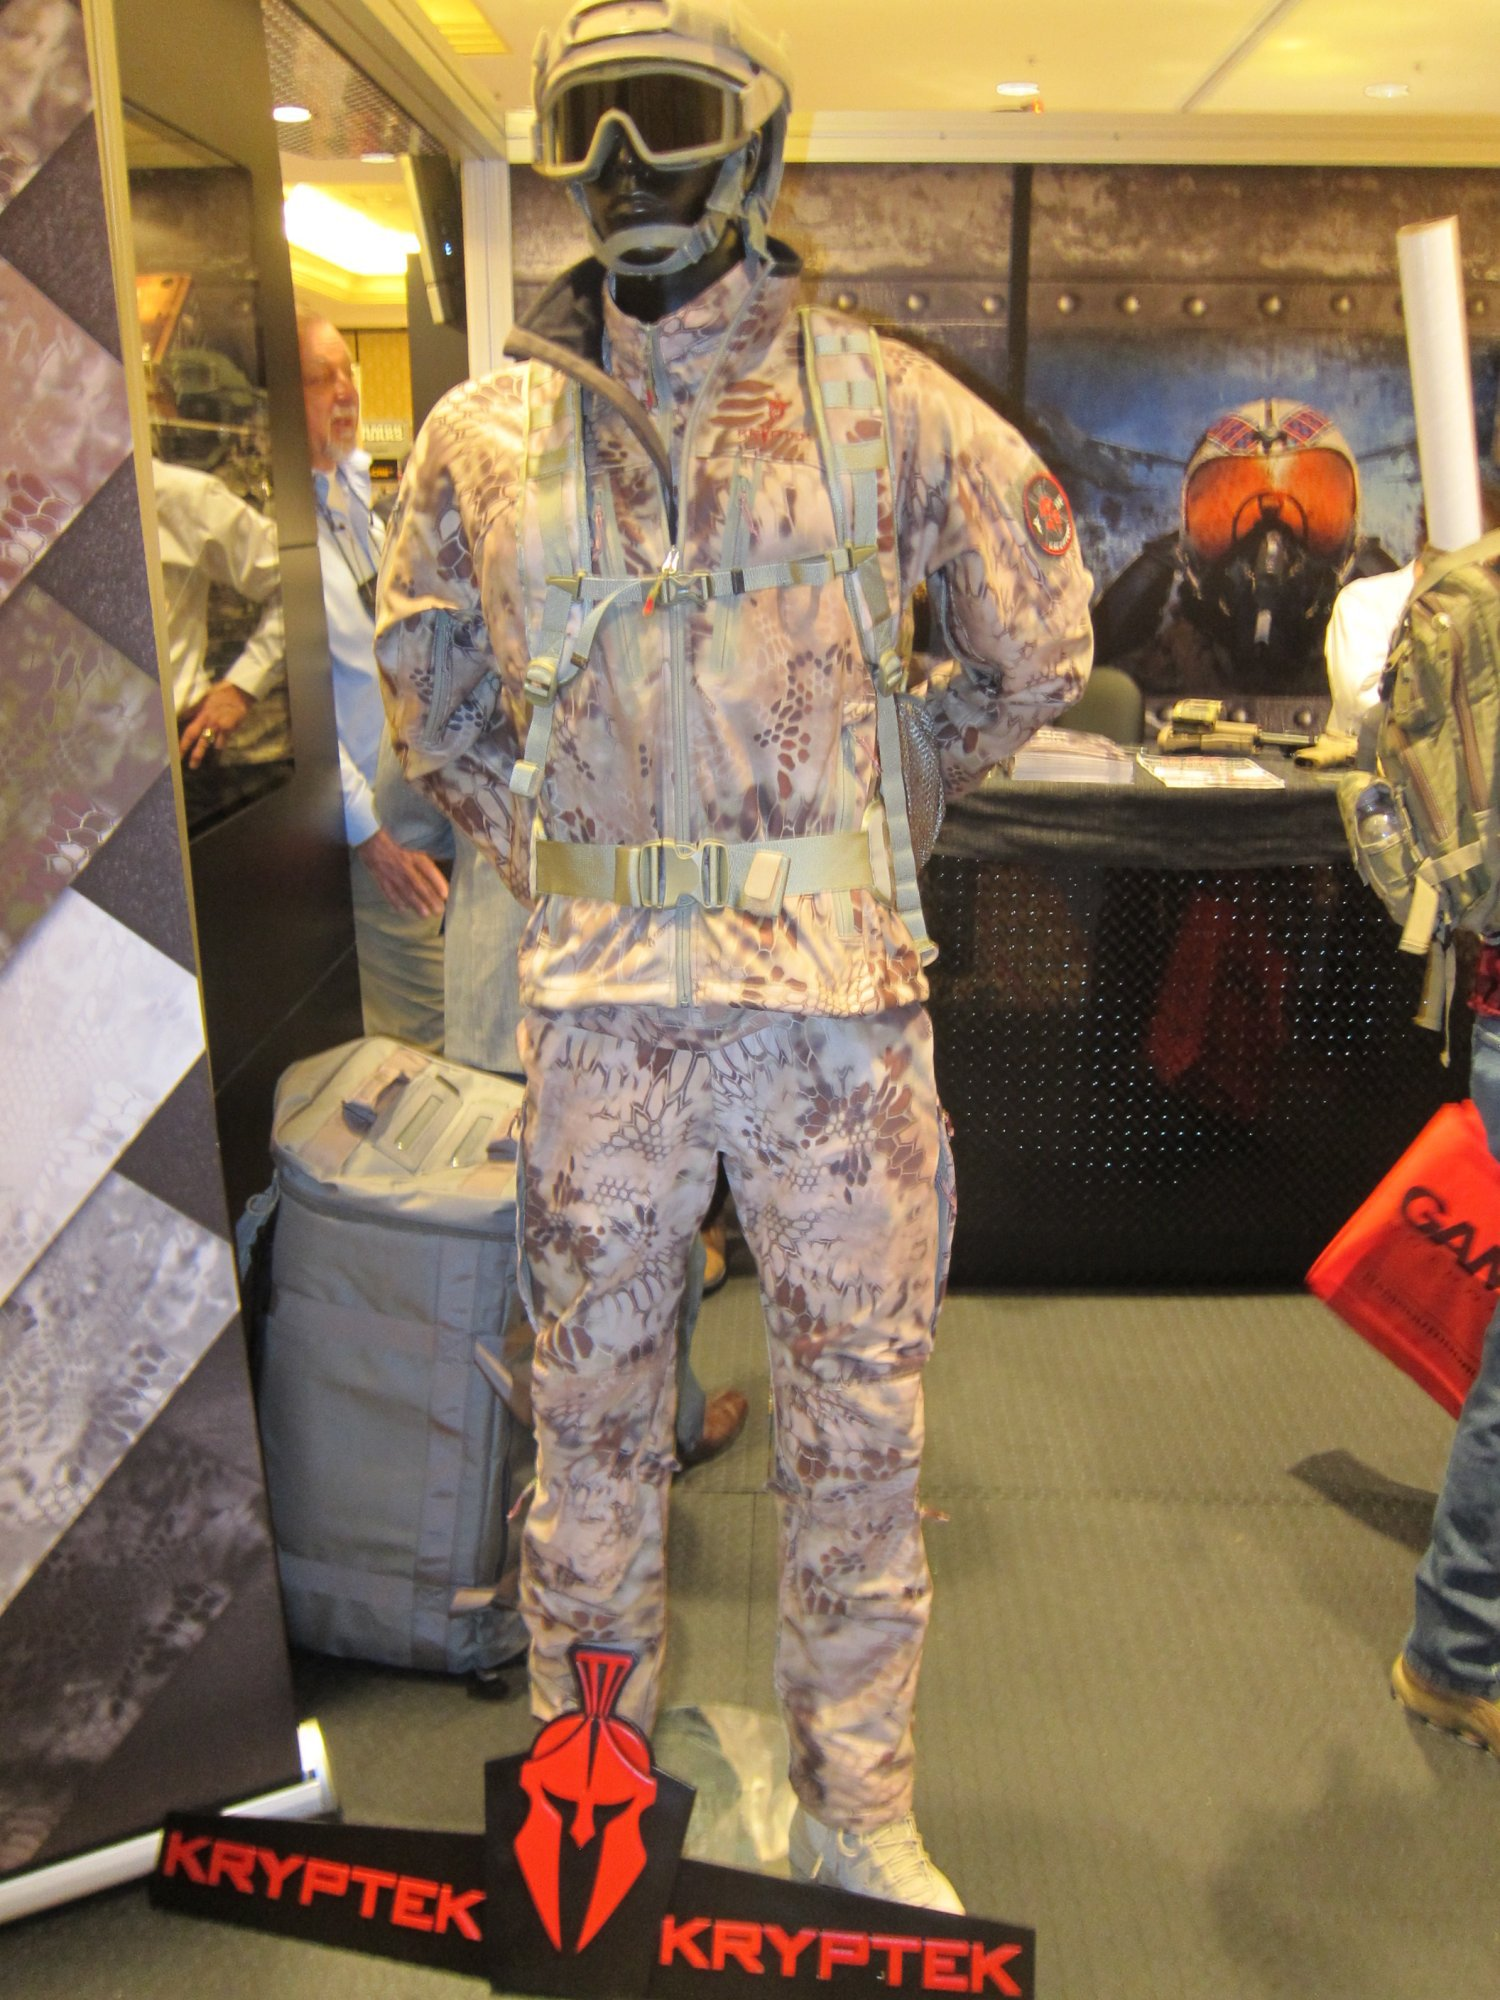 KRYPTEK LEAF Combat Camouflage Source One Distributing SOD Booth SHOT Show 2012 1 18 2012 DefenseReview.com DR 1 Kryptek LEAF/Camo Technologies 3 Dimensional (3 D)/Multi Directional Biomimetic Military Combat Camouflage (Camo) Patterns at SHOT Show 2012: Is the Armys Future Soldier Going Reptilian? (Video!)